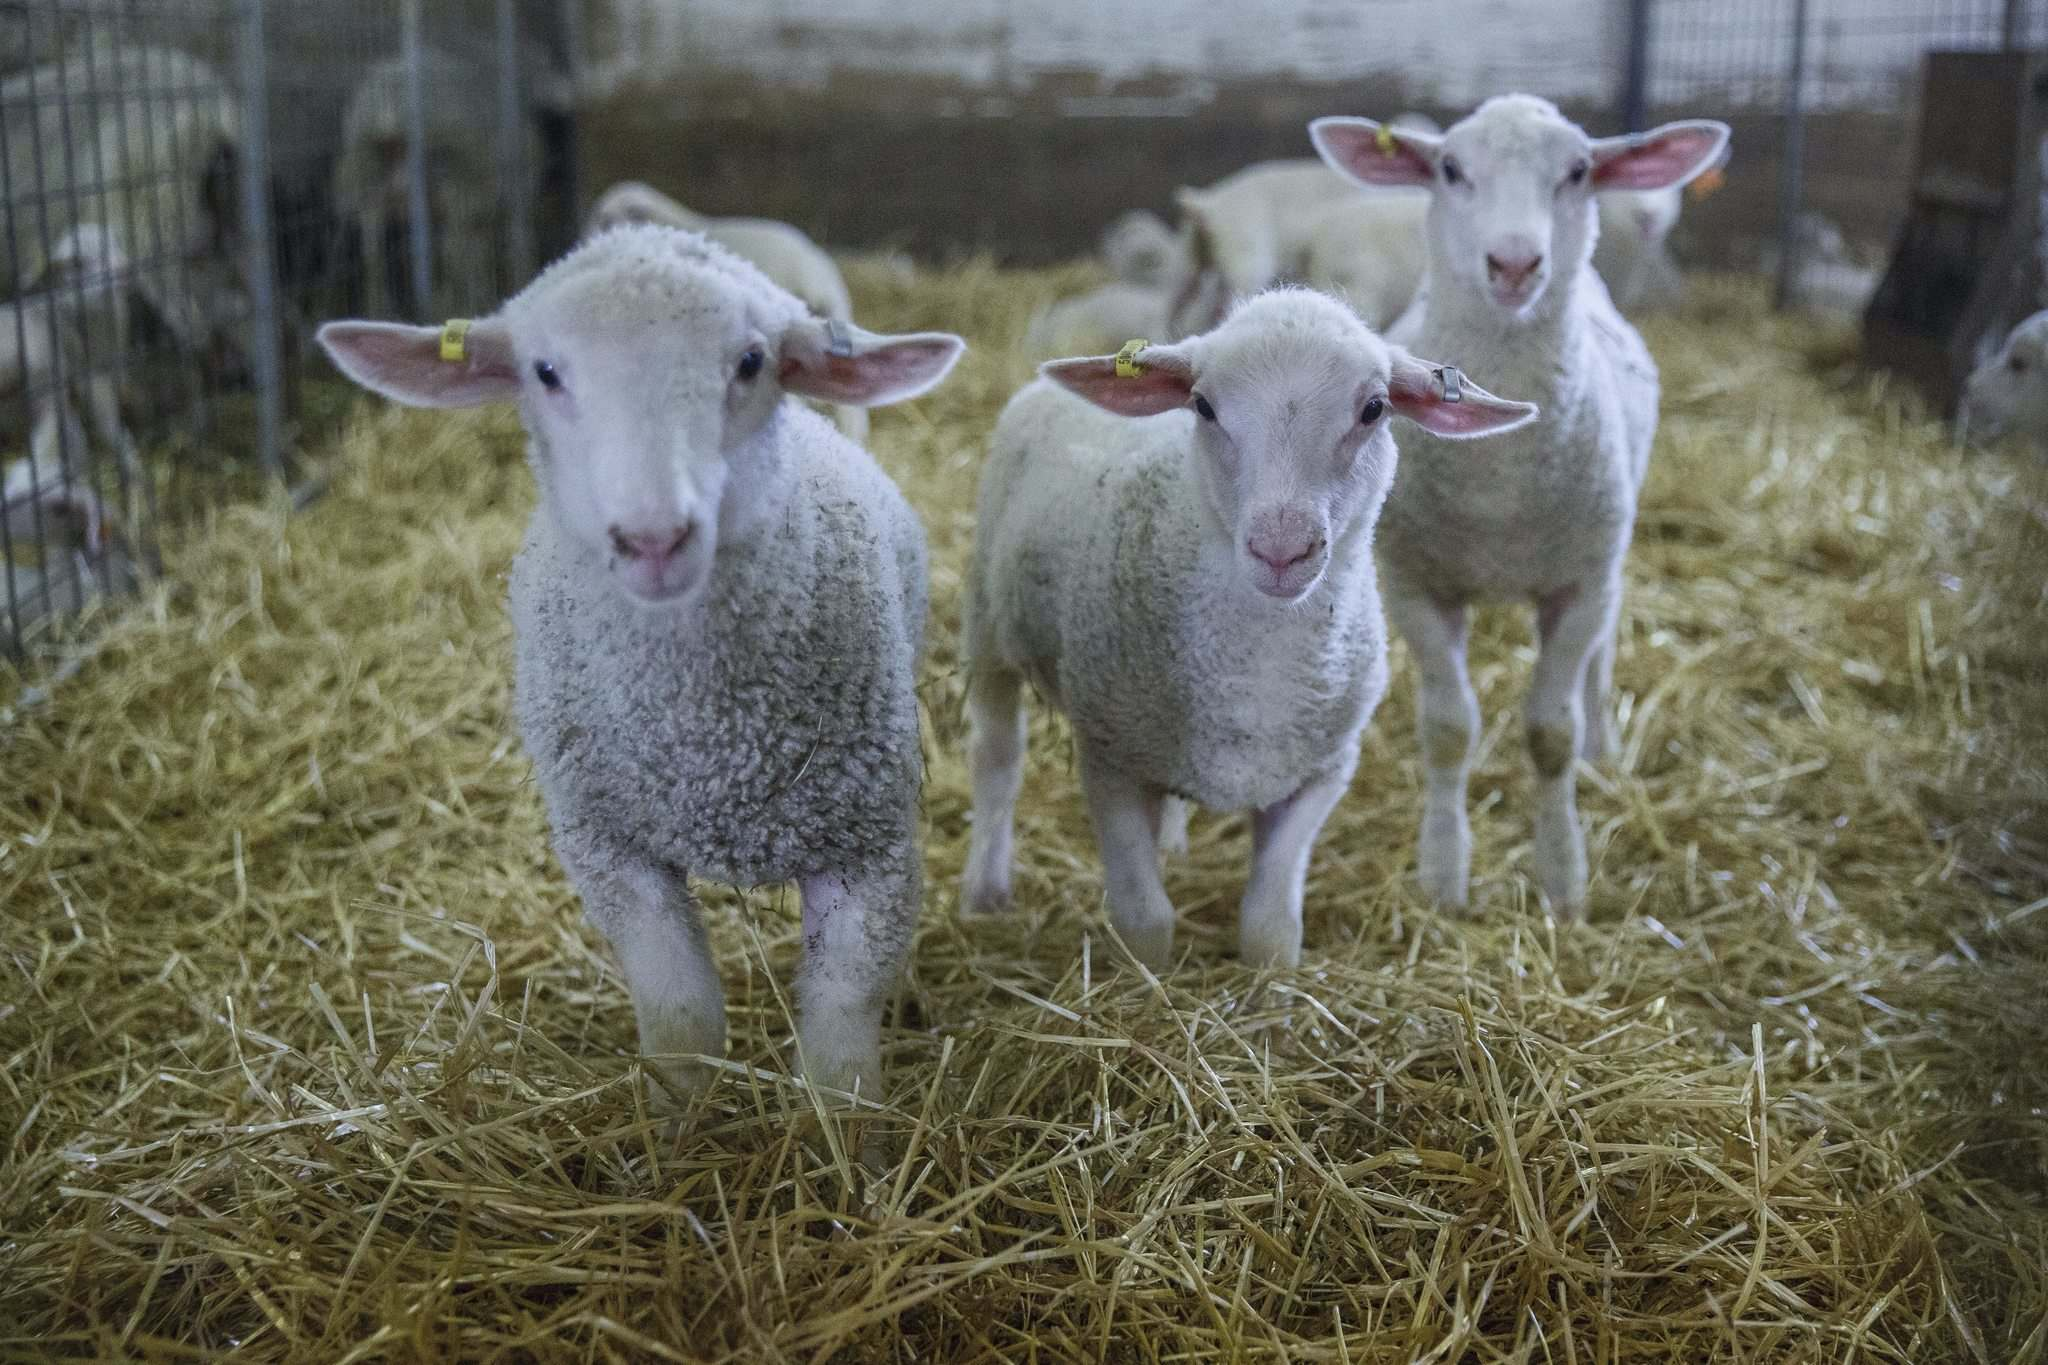 Currently, Manitoba farmers have to ship their lambs out of province to be processed. But Smith's company is planning to build a sheep-and-lamb processing plant for southeastern Manitoba.